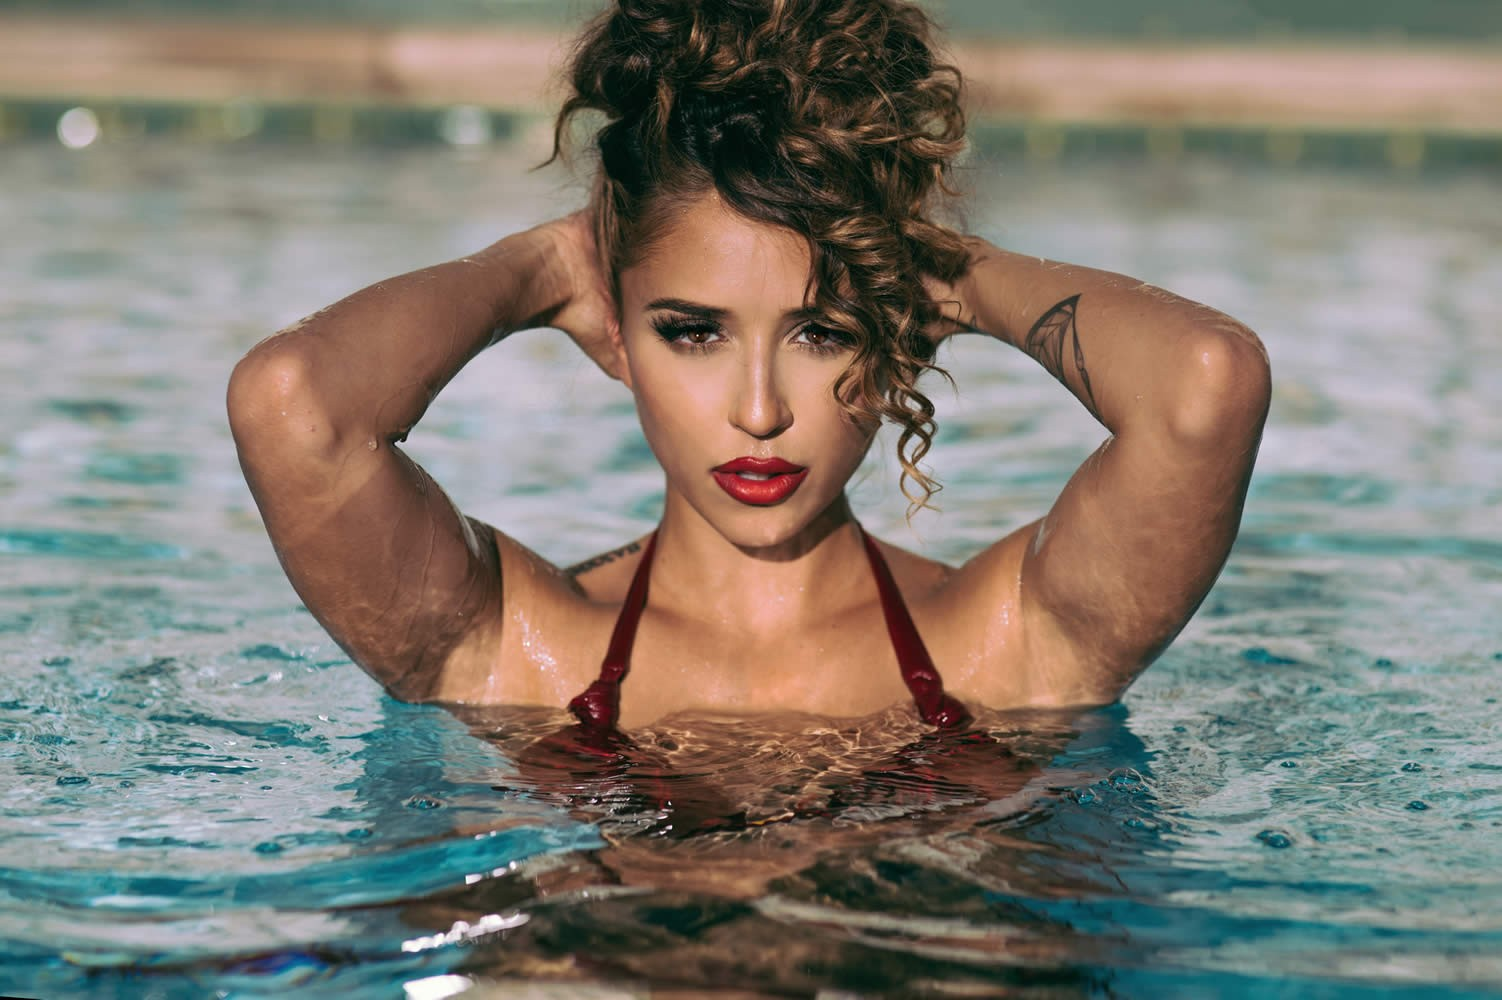 #water, #model, #tianna Gregory, #swimming Pool, #women, - Tianna Gregory In Pool , HD Wallpaper & Backgrounds